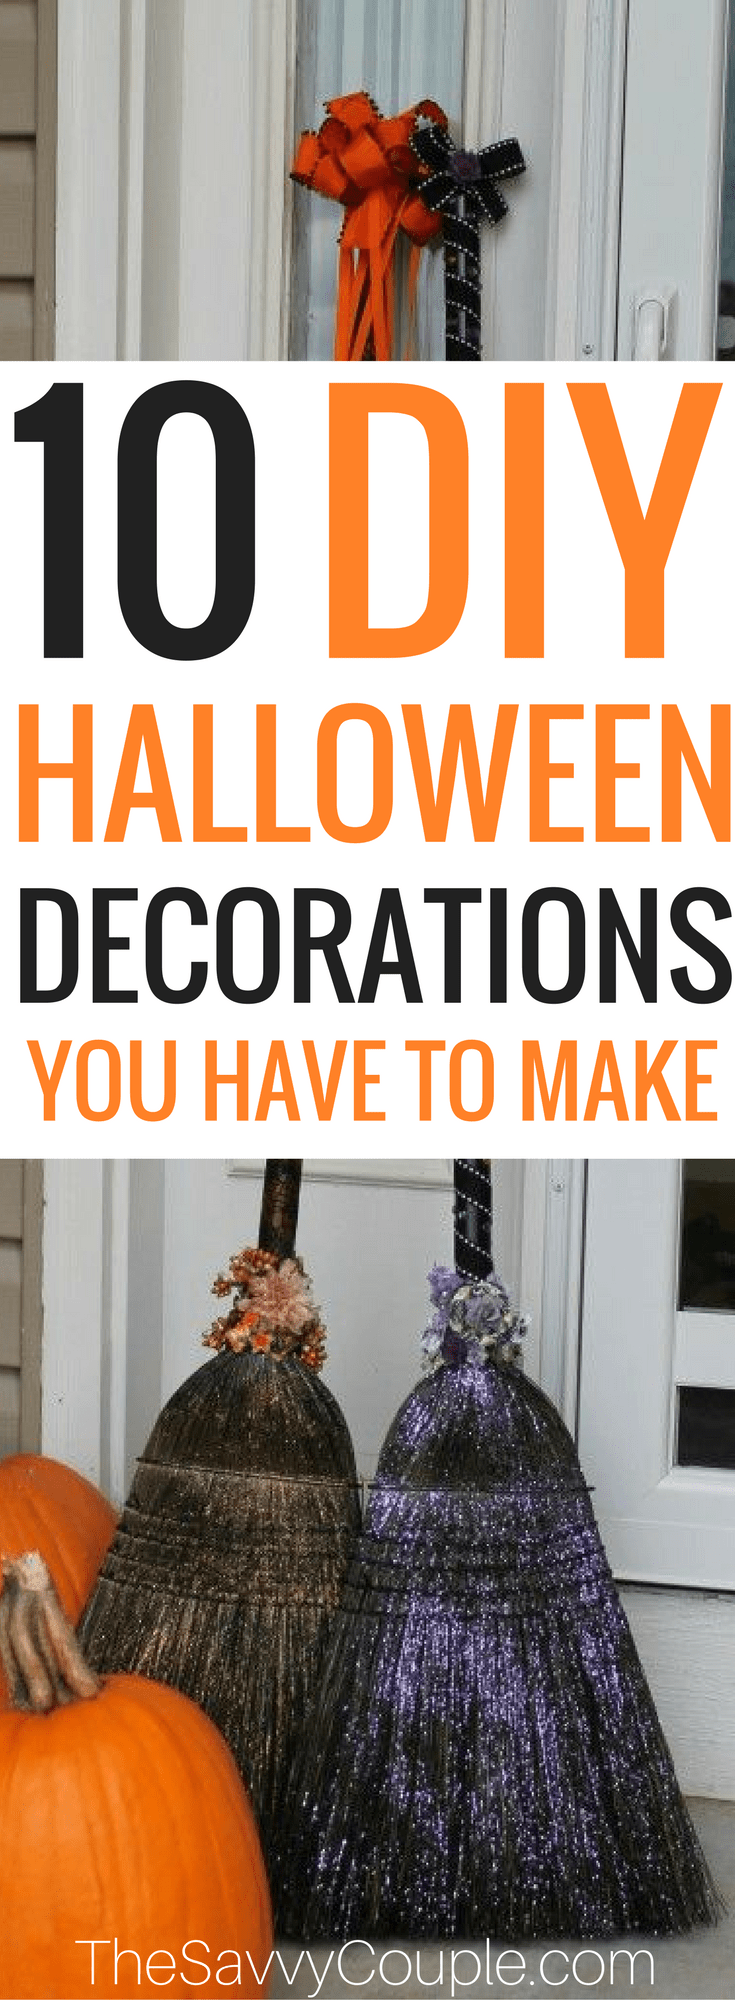 decorations for halloween to make cheap halloween decorations that will make your house haunted